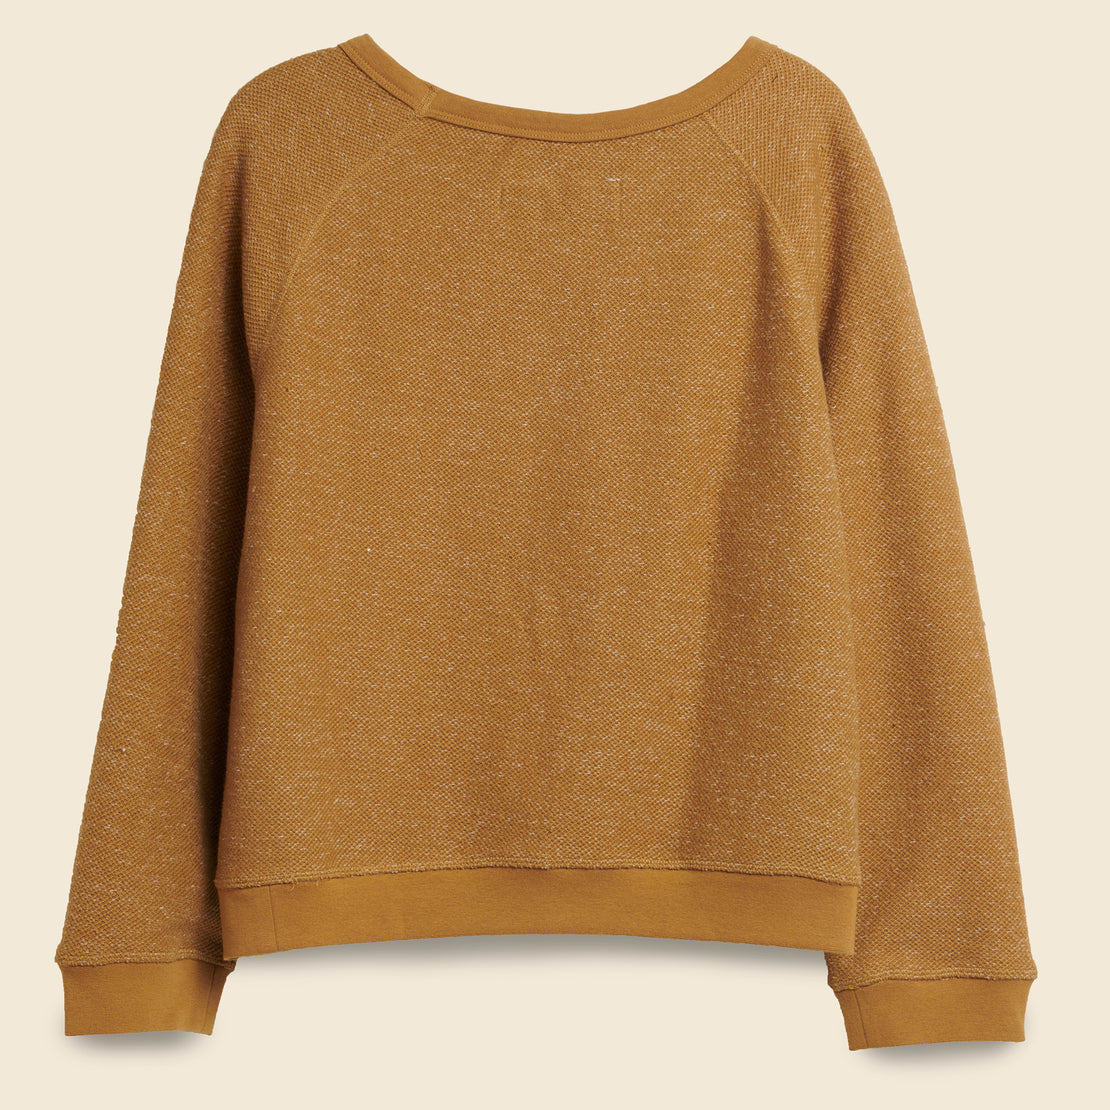 Cloud Crewneck - Tan Earth